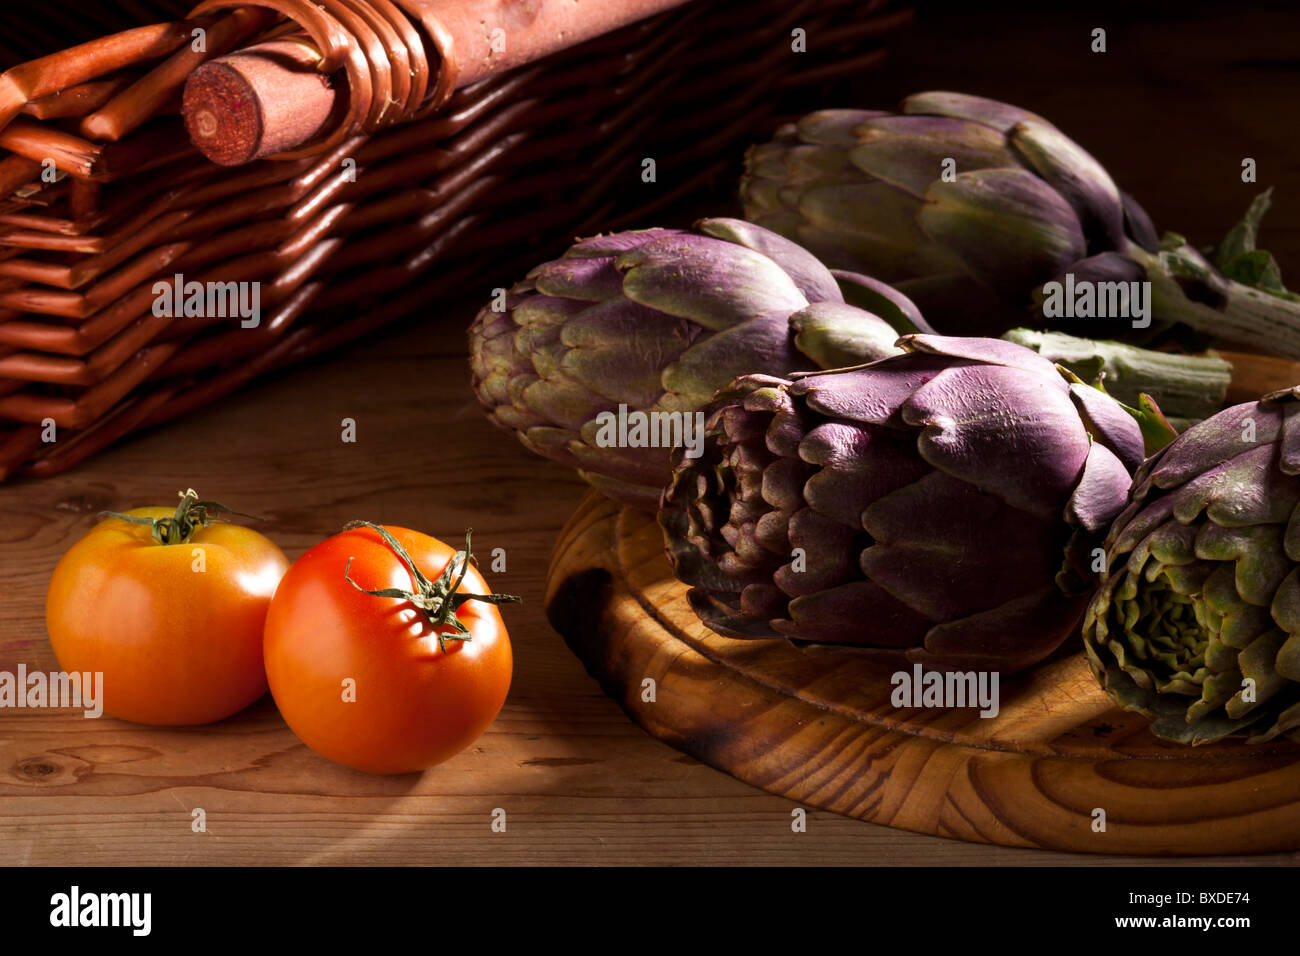 Artichokes and Tomatoes - Stock Image